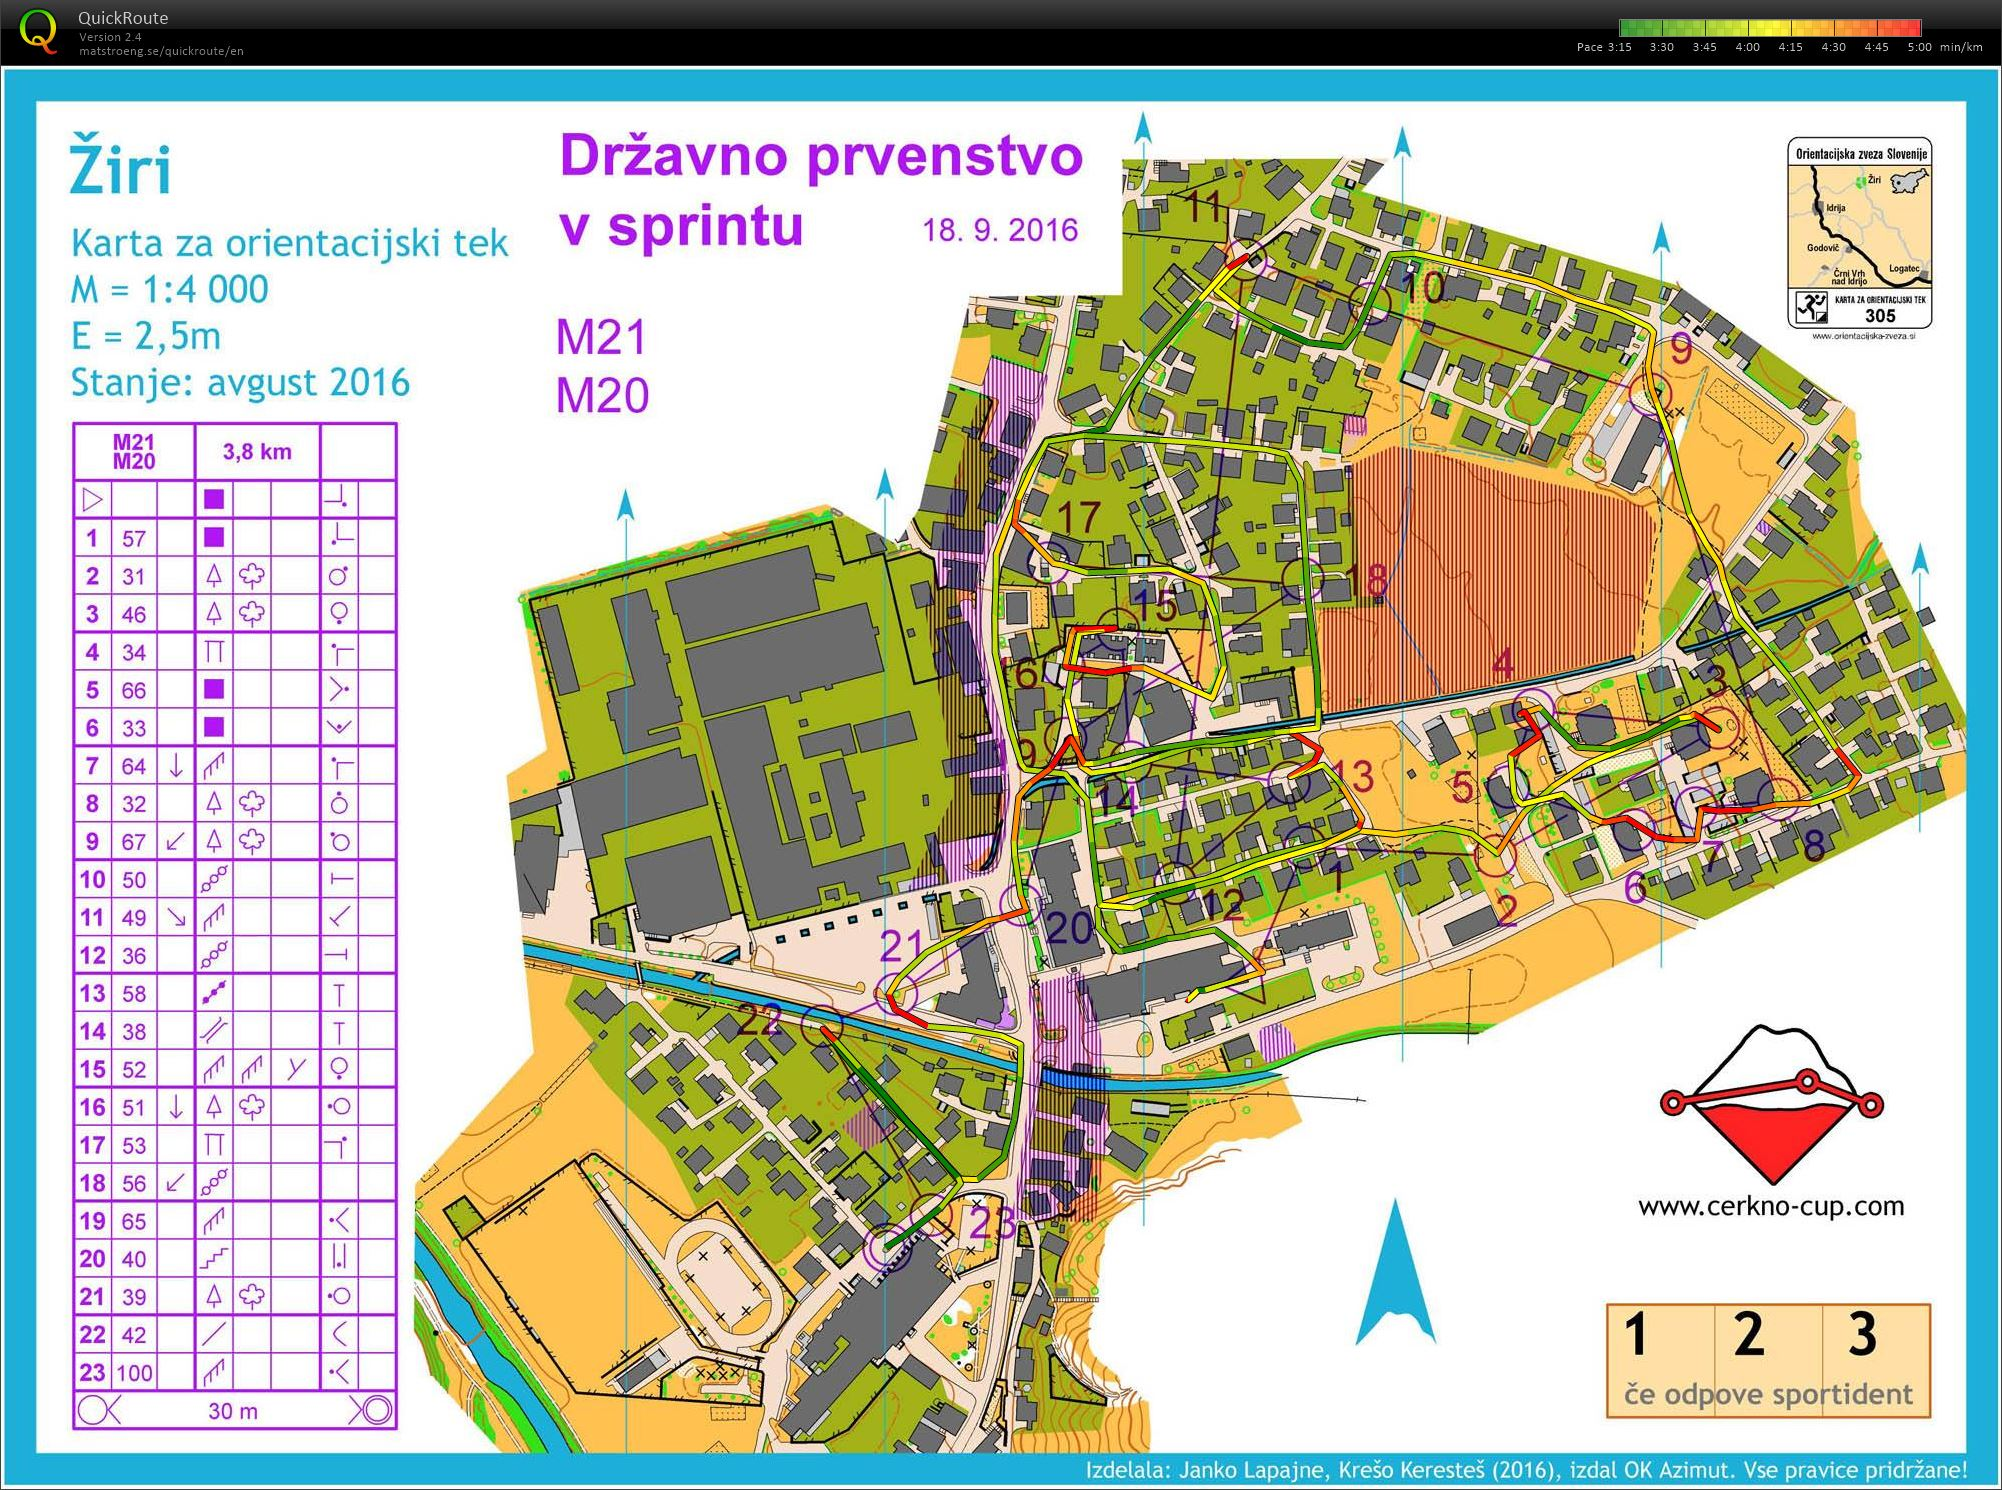 National Championship sprint 2016 (18. 09. 2016)